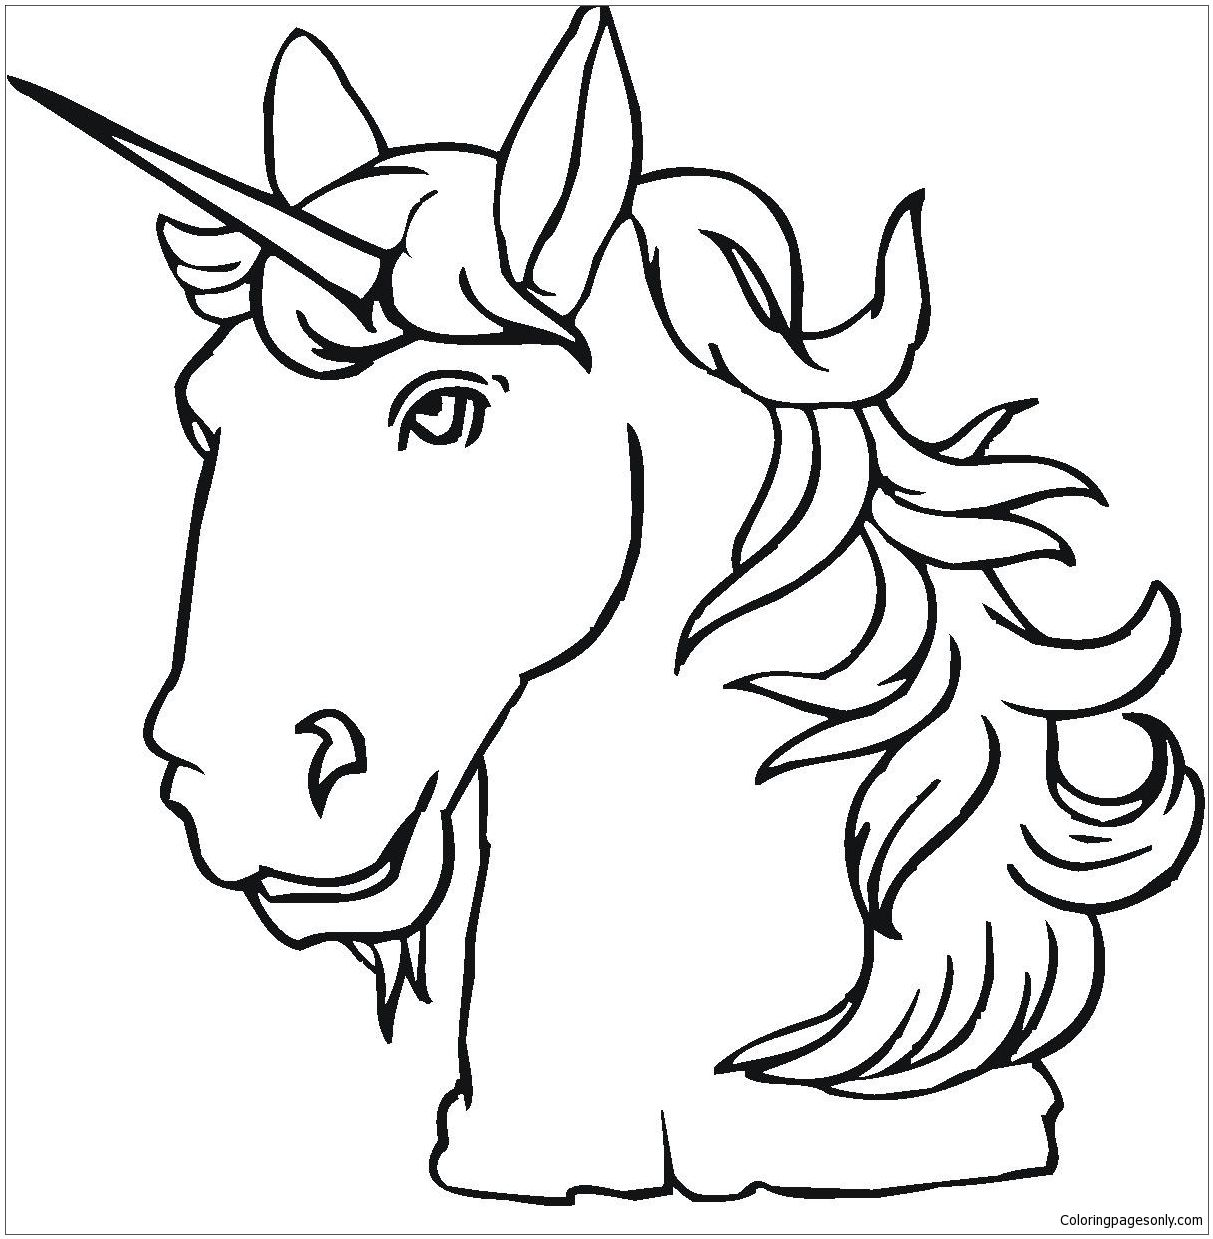 Unicorn Head Coloring Page Free Coloring Pages Online Unicorn Coloring Pages Unicorn Printables Unicorn Head